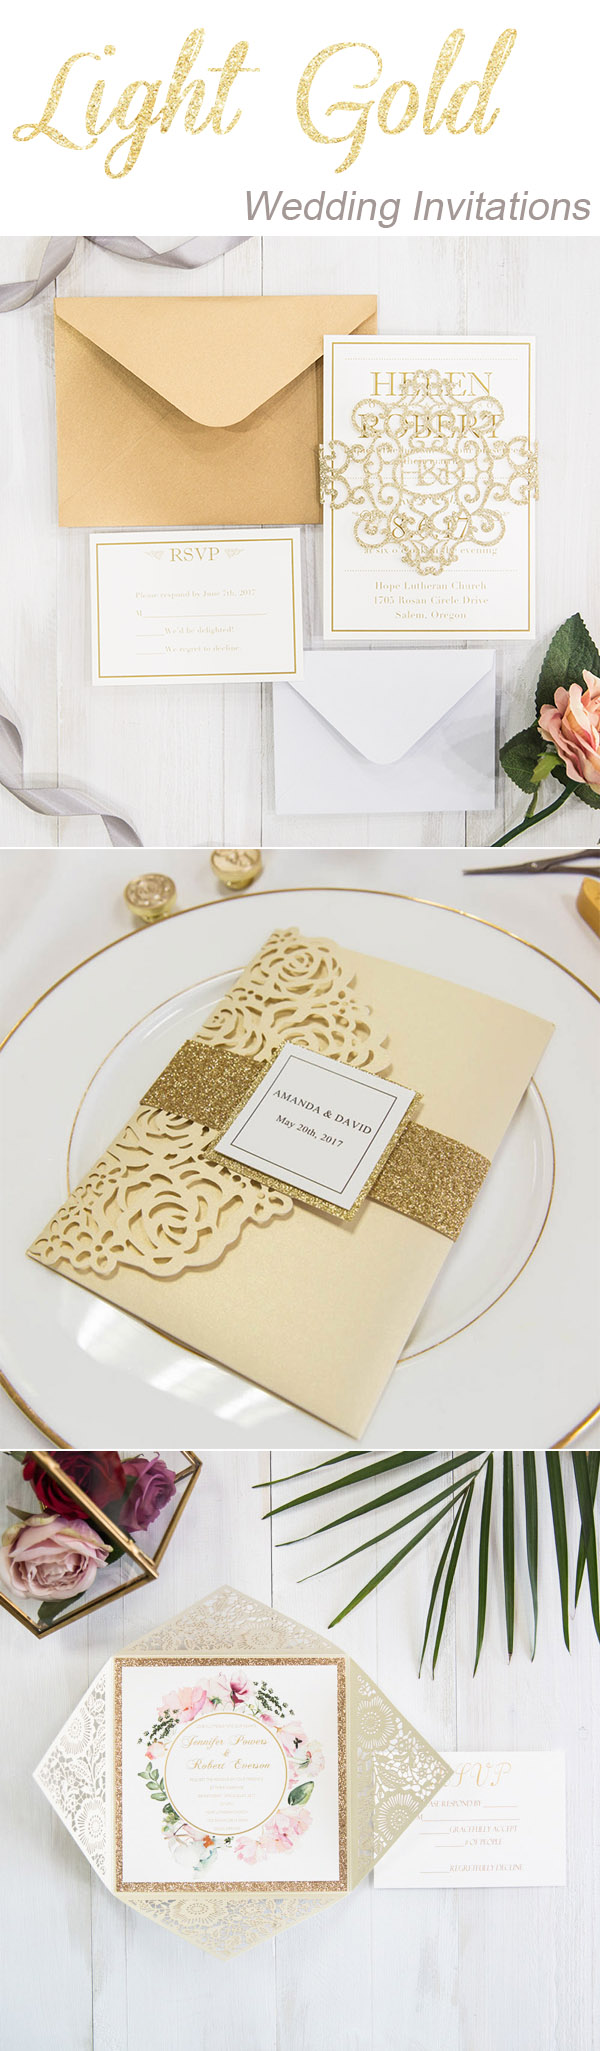 chic elegant gold and goil wedding invitations